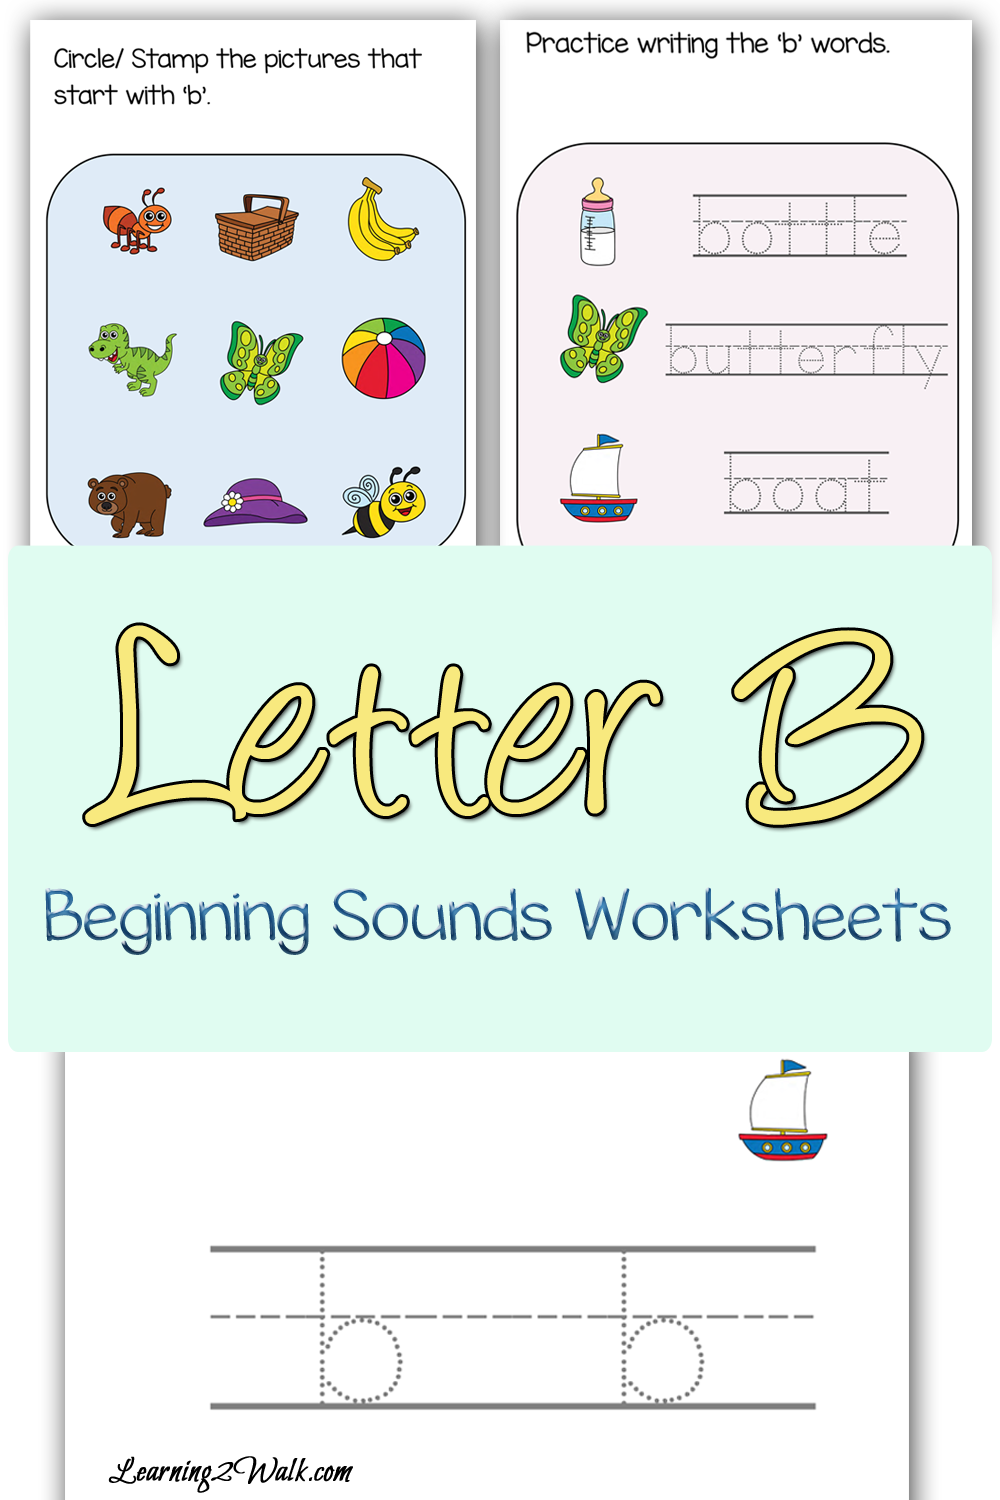 beginning sounds b worksheets worksheets and homeschool. Black Bedroom Furniture Sets. Home Design Ideas